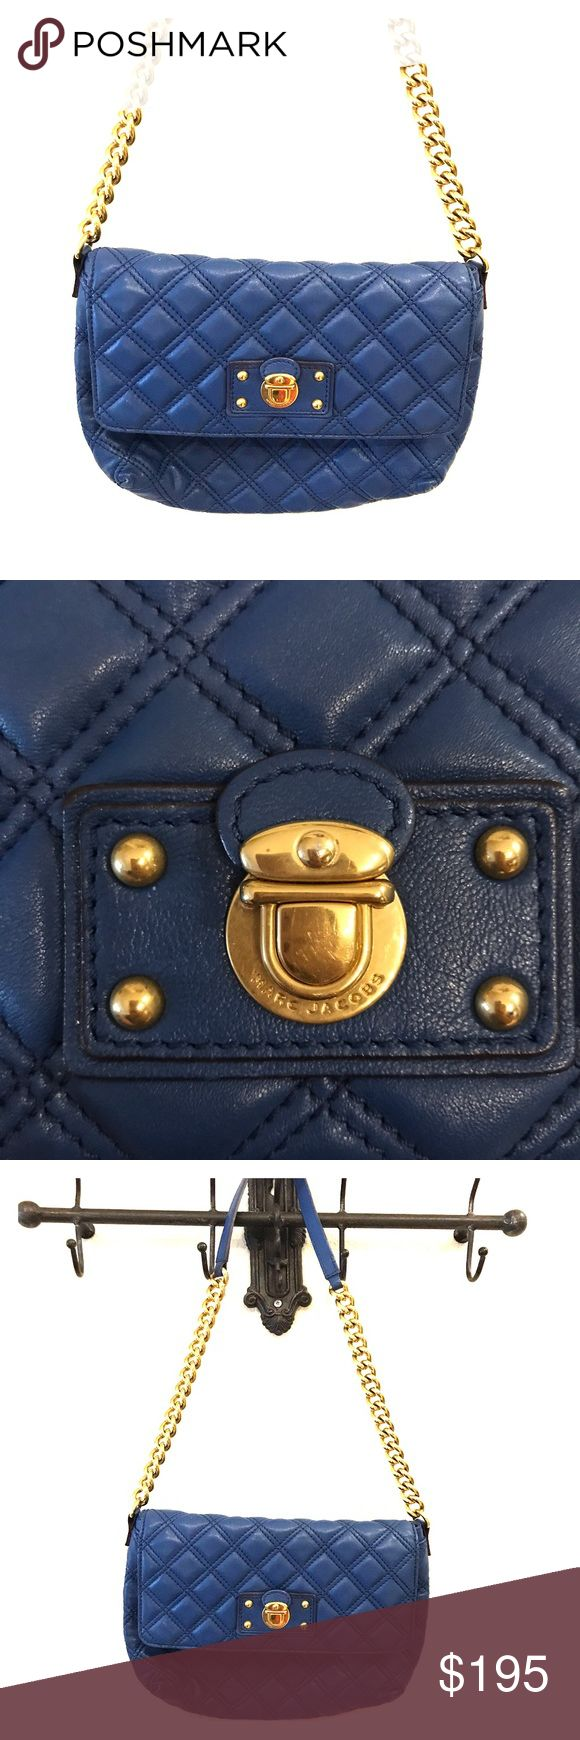 Selling this Marc Jacobs Blue Quilted Leather Purse on Poshmark! My username is: hultzie. #shopmycloset #poshmark #fashion #shopping #style #forsale #Marc Jacobs #Handbags